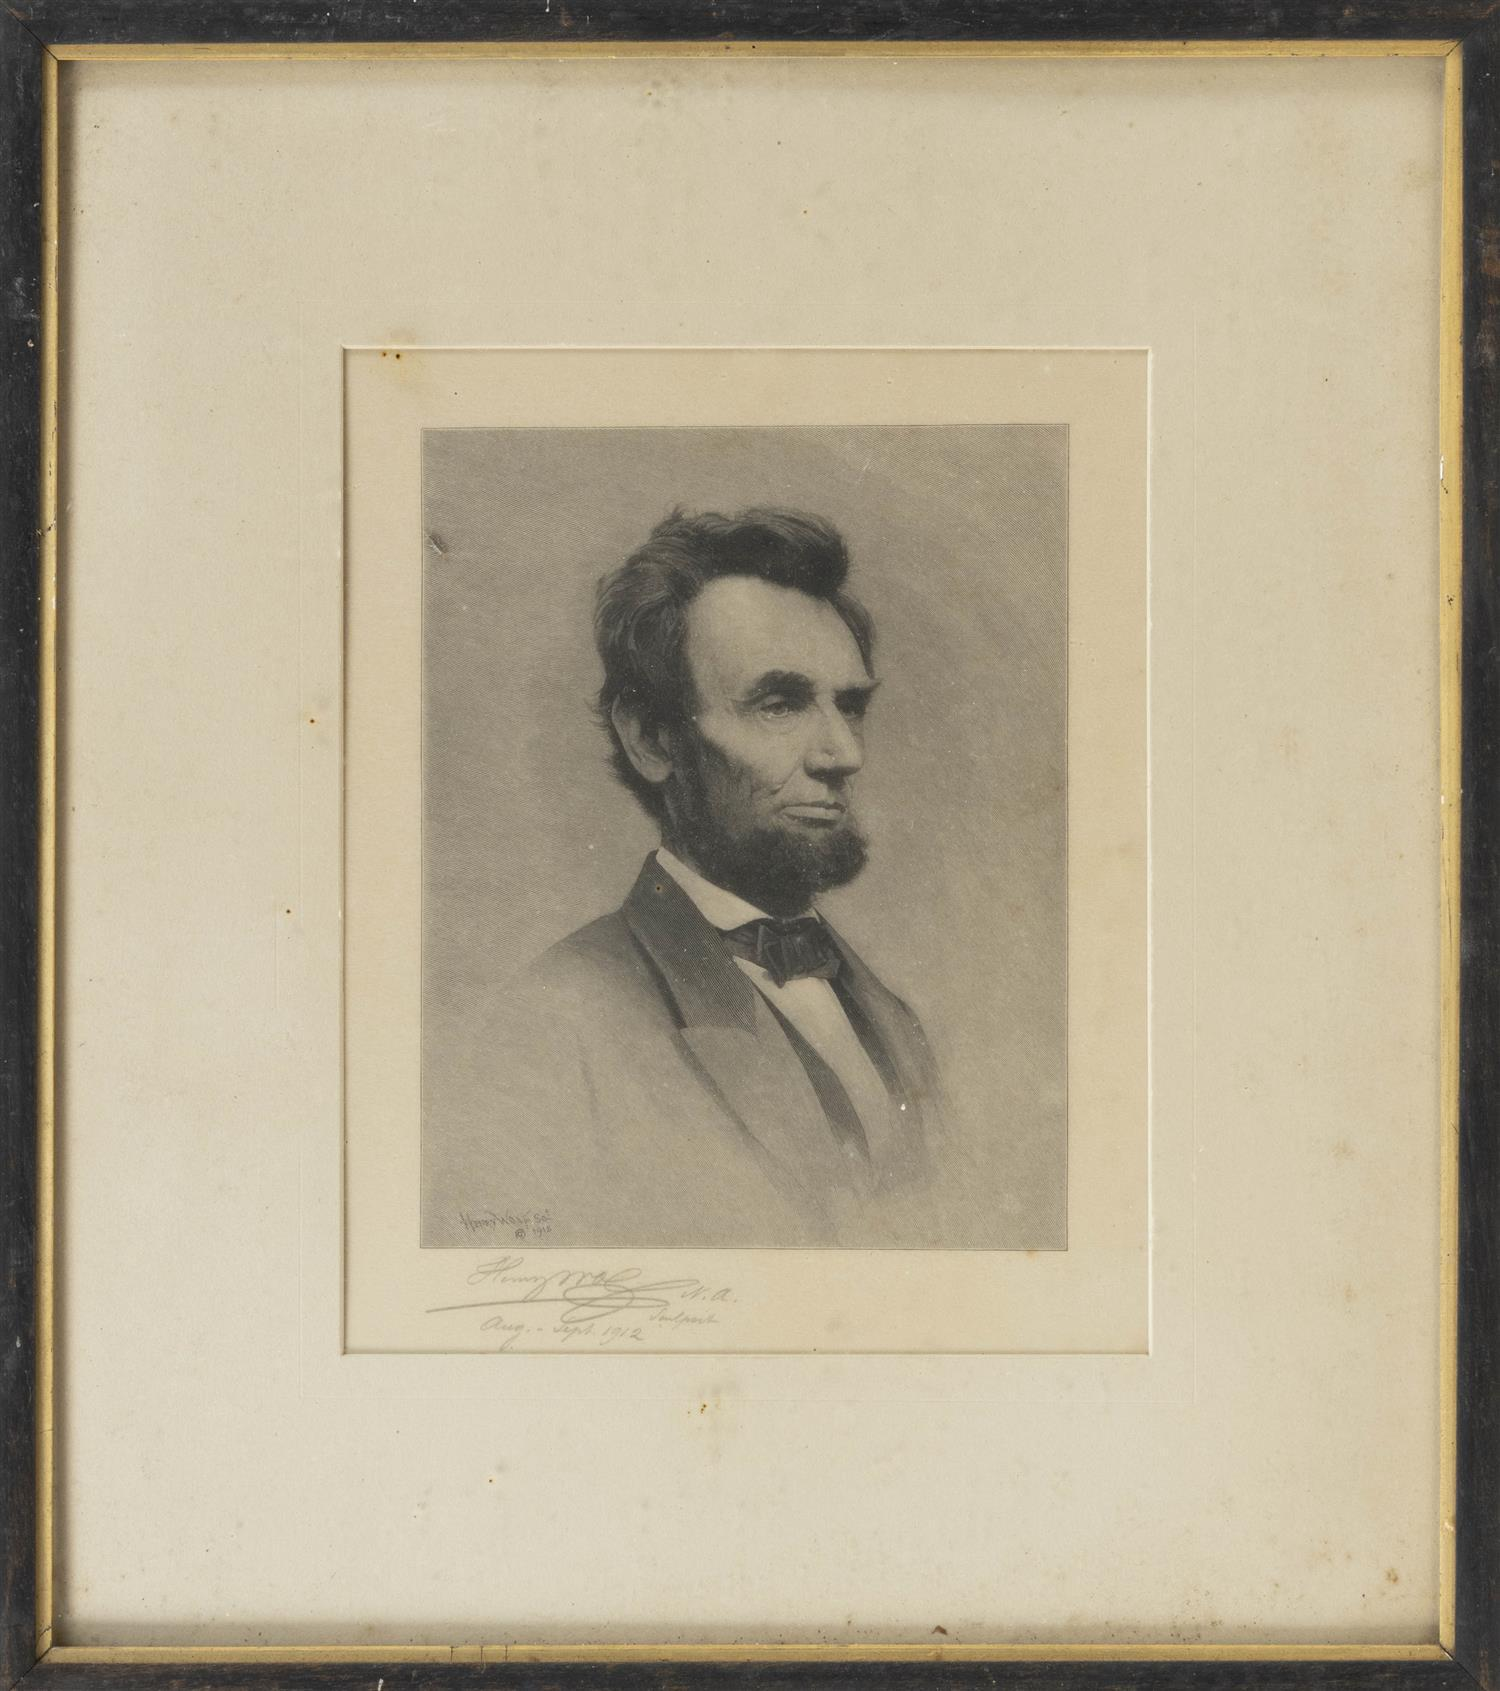 "ETCHING BY HENRY WOLF Depicts Abraham Lincoln. Signed and dated lower left ""Henry Wolf 1912"". 10"" x 8"" sight. Framed 17"" x 15""."